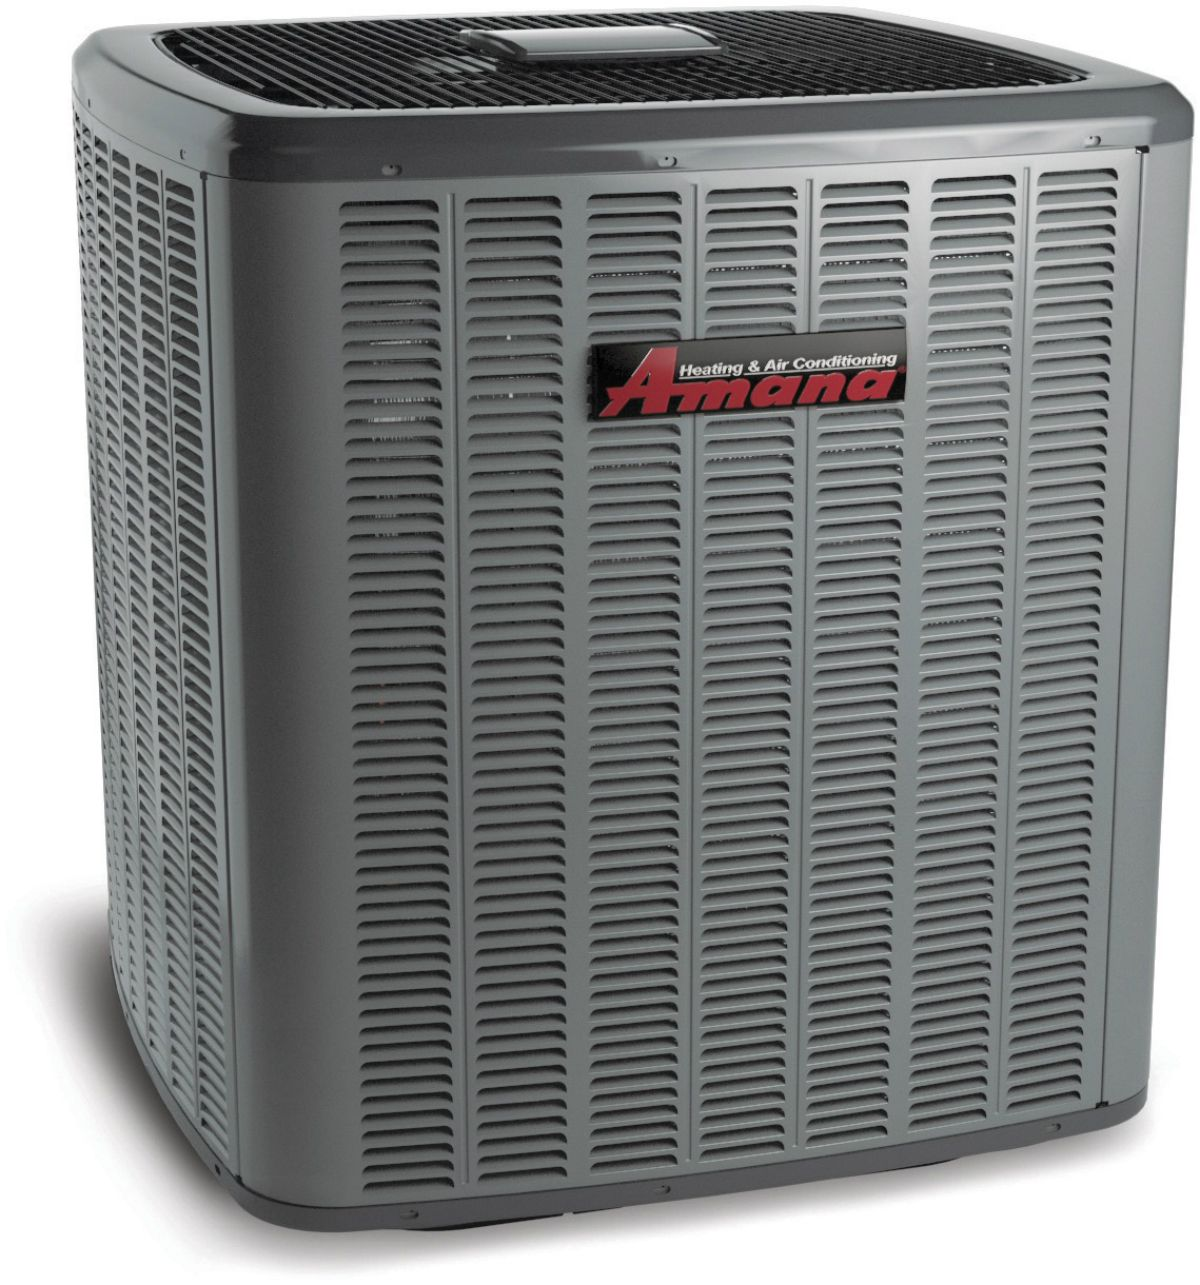 Amana Asx Series Air Conditioner 3 Ton 16 Seer R410a Condensing Unit Wiring Diagram Product Highlights